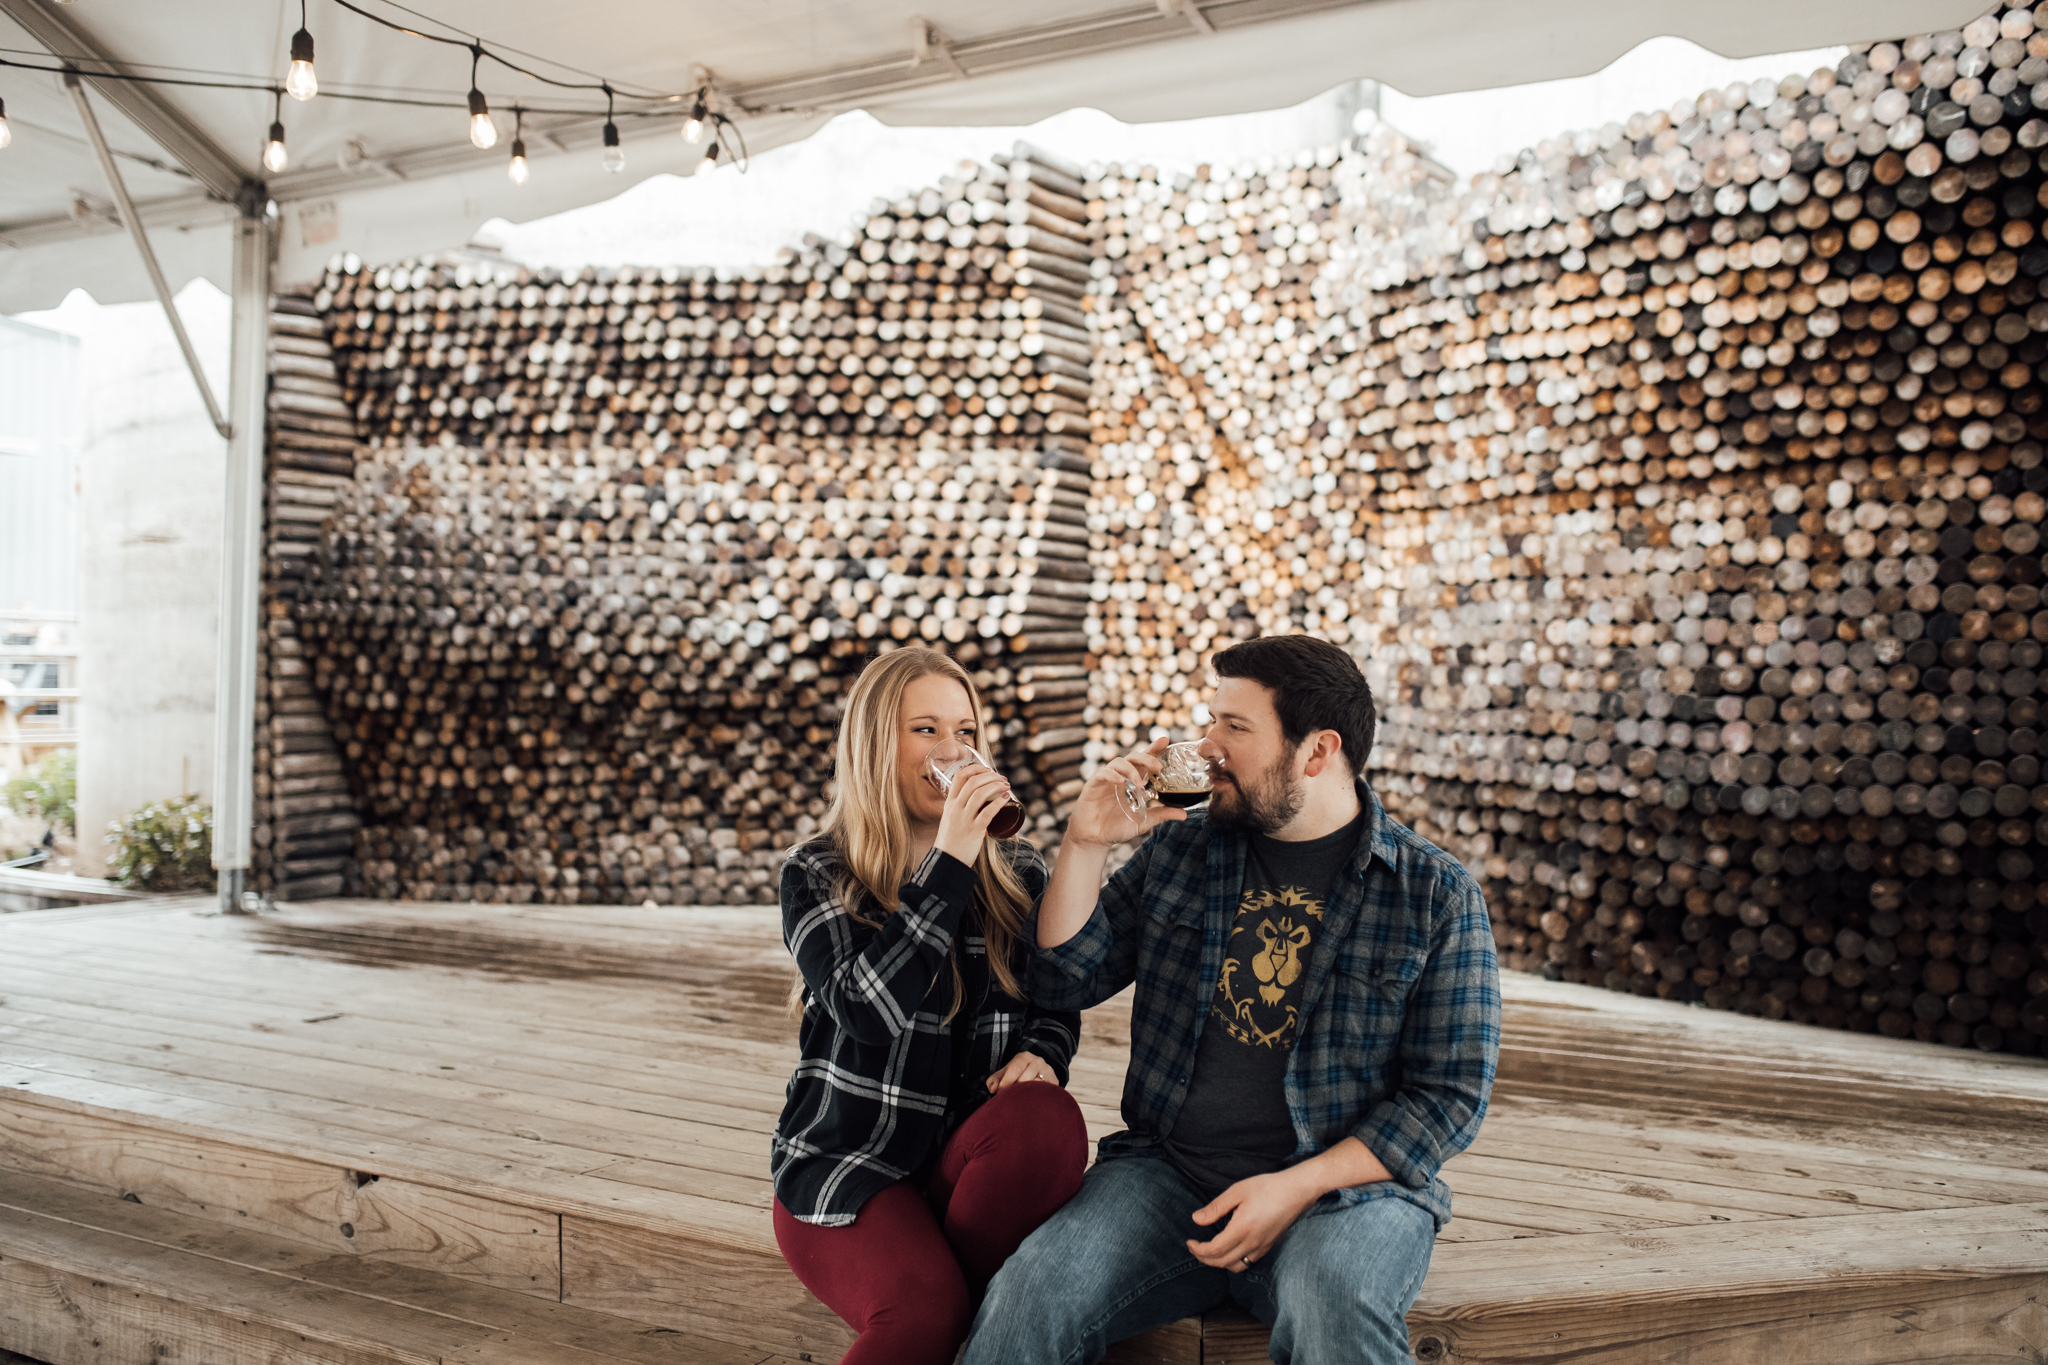 wiseacre-brewing-wedding-photographer-the-warmth-around-you-cassie-cook-photography (12 of 64).jpg